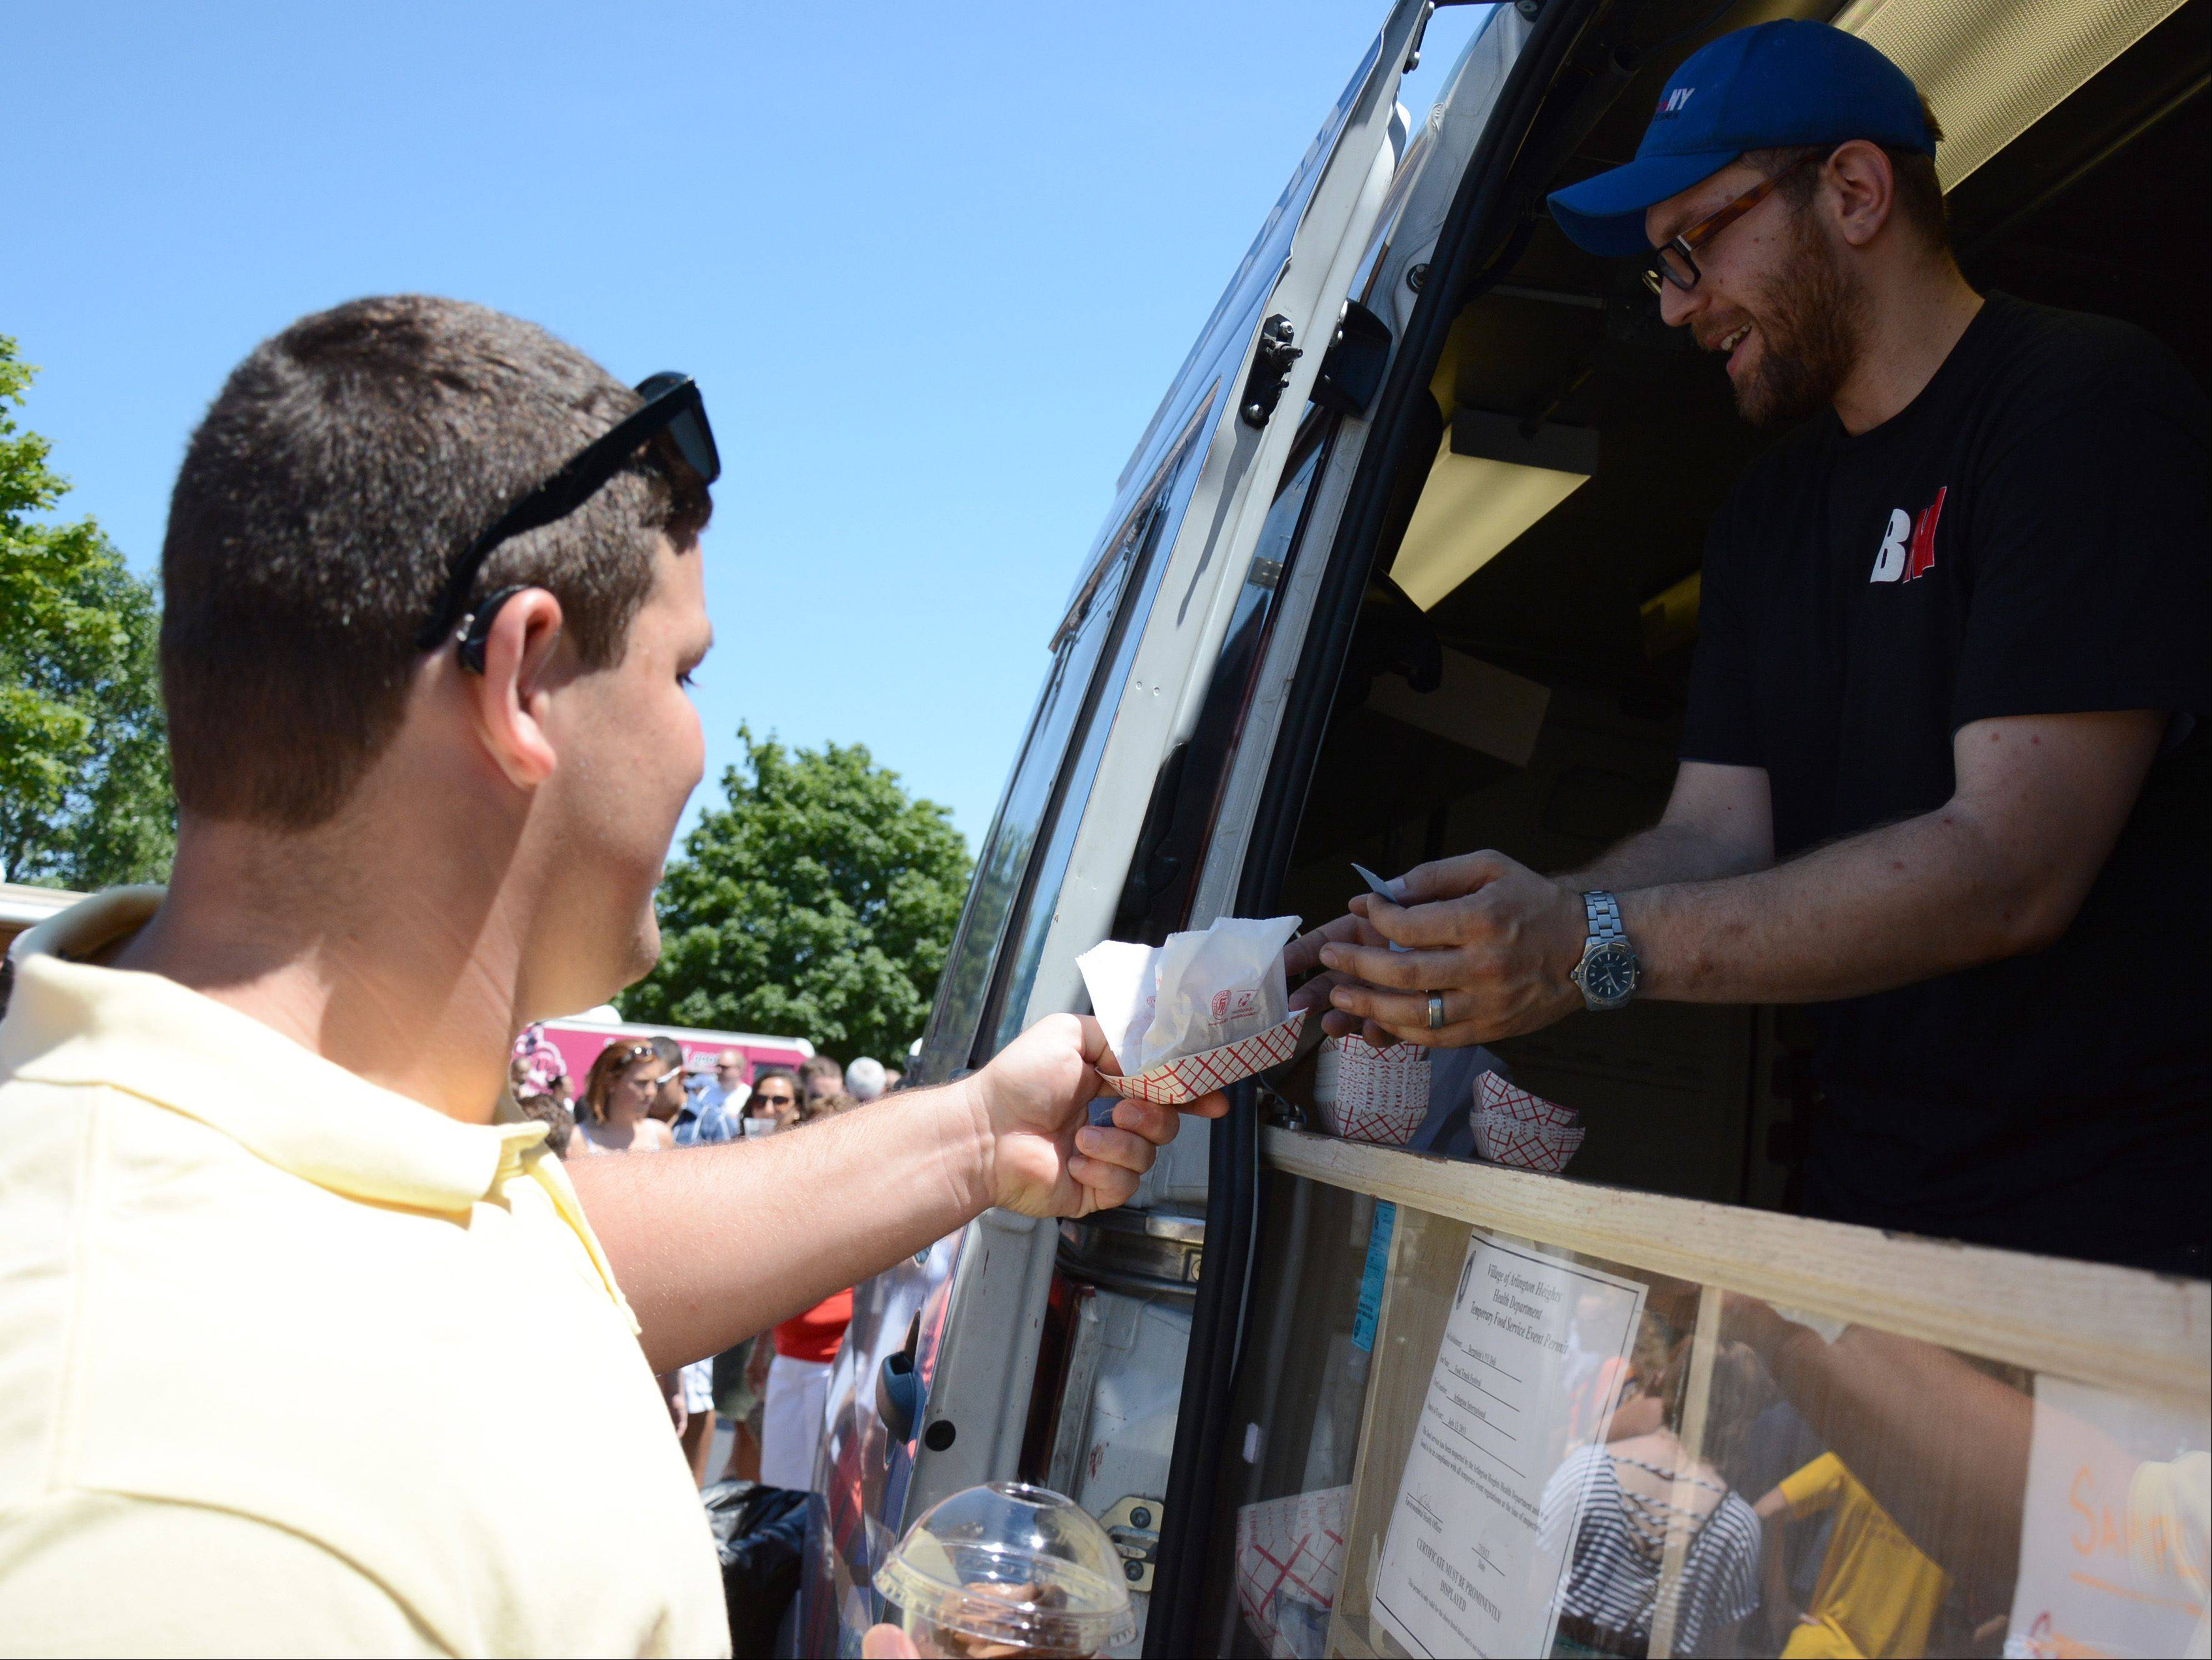 Nick Amren, left, of Crystal Lake gets a potato pancake from Bill Davis of Bergstein's NY Delicatessen during the Food Truck Festival at Arlington Park on Saturday.